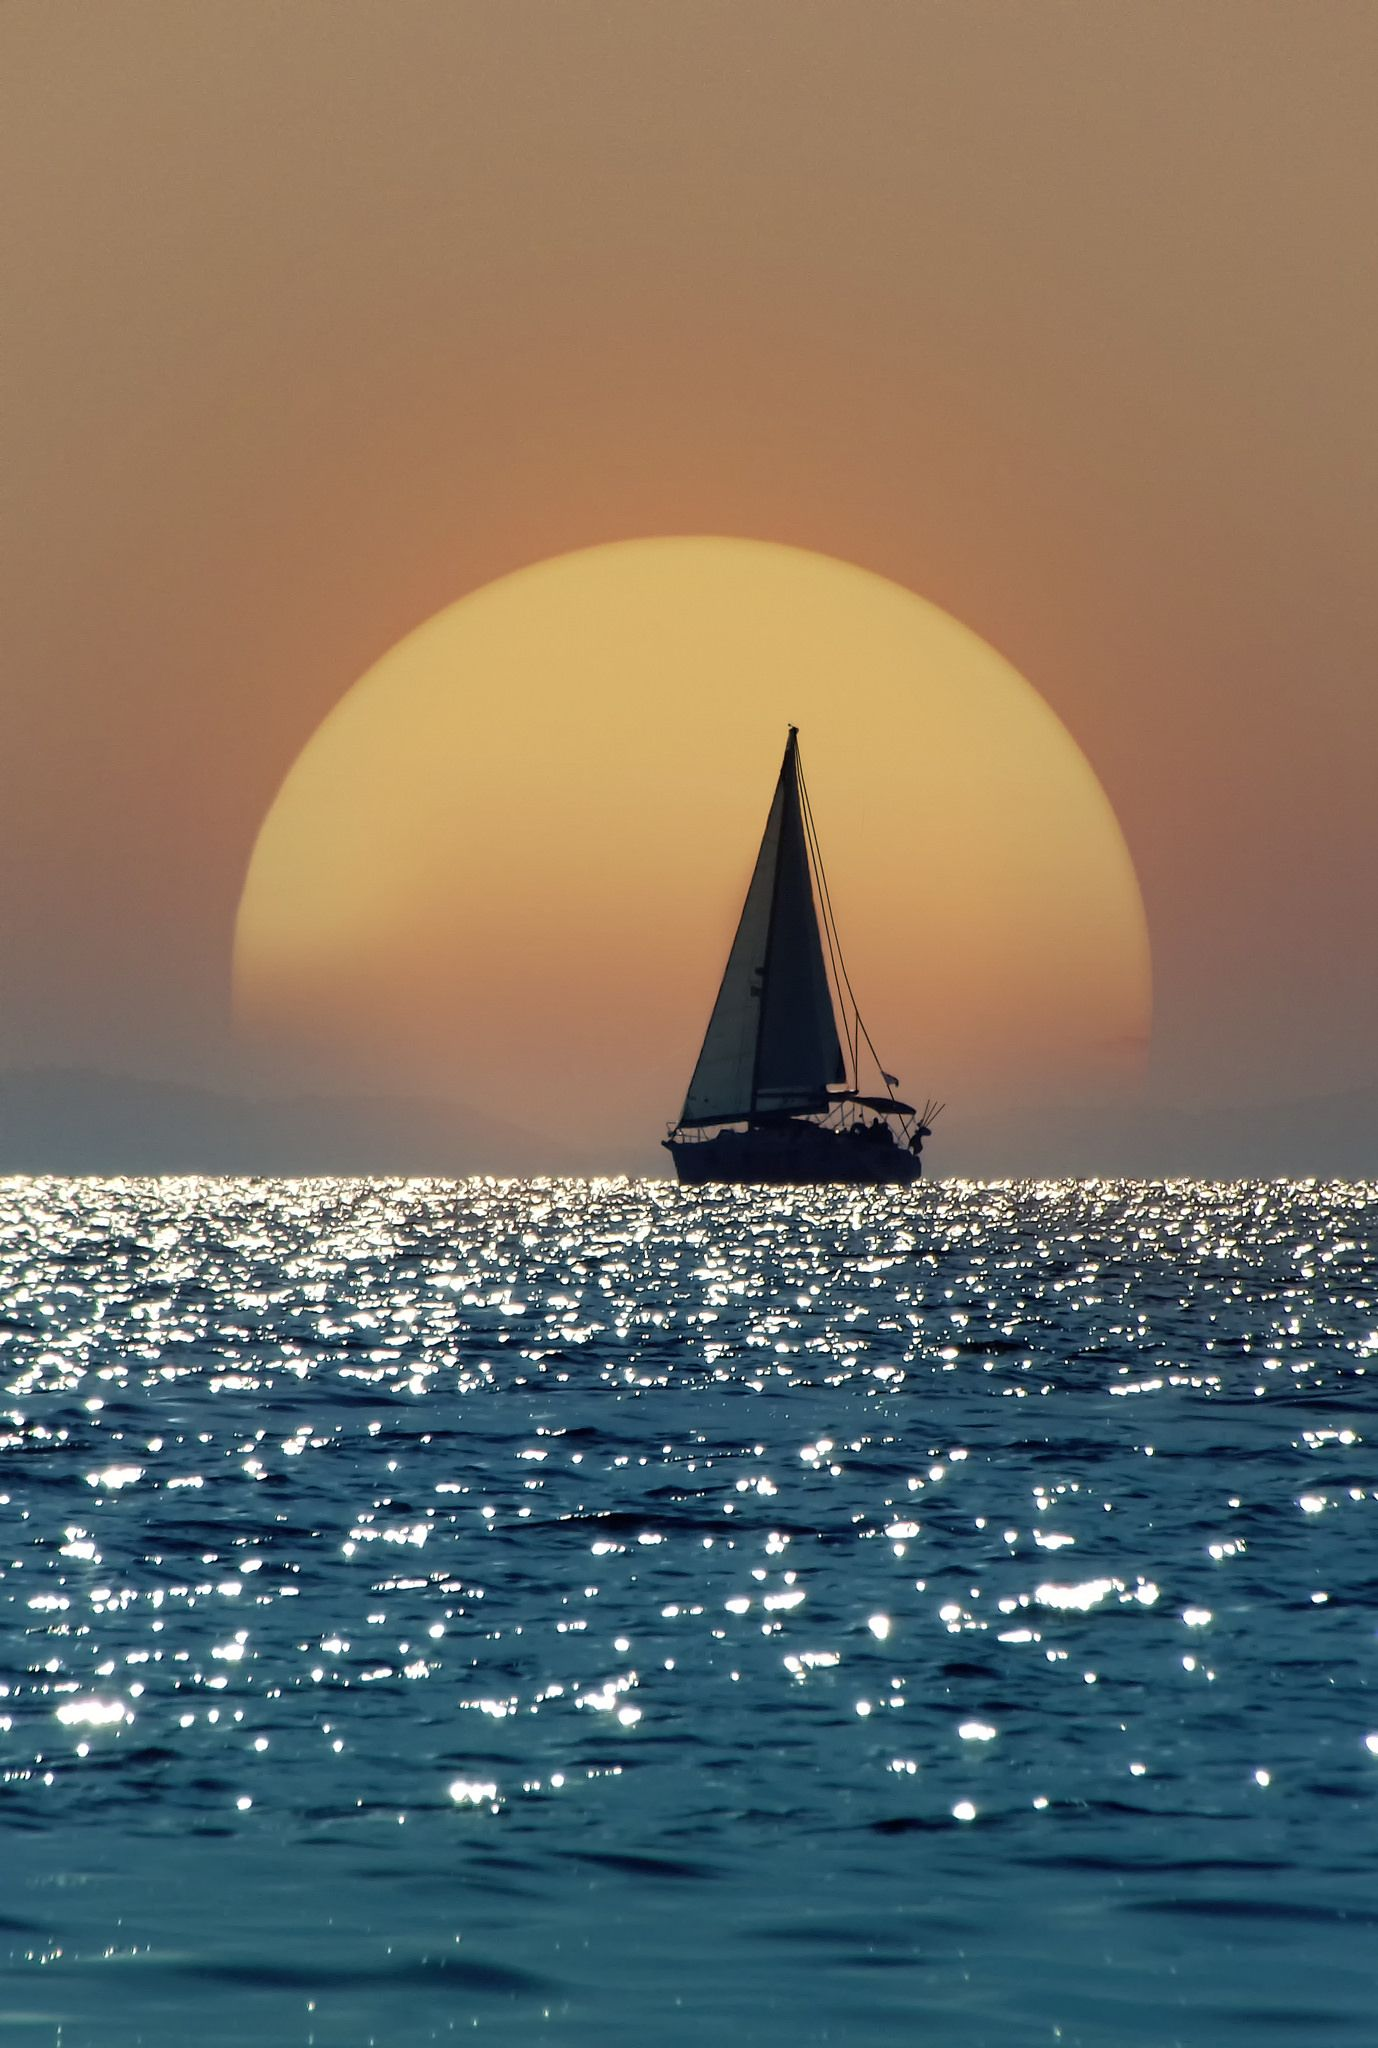 Sometimes I Wish I Could Just Sail Away Into The Sunset Https Www Sailo Co Sunset Photography Nature Photography Nature Moon boat sunset sail evening lake